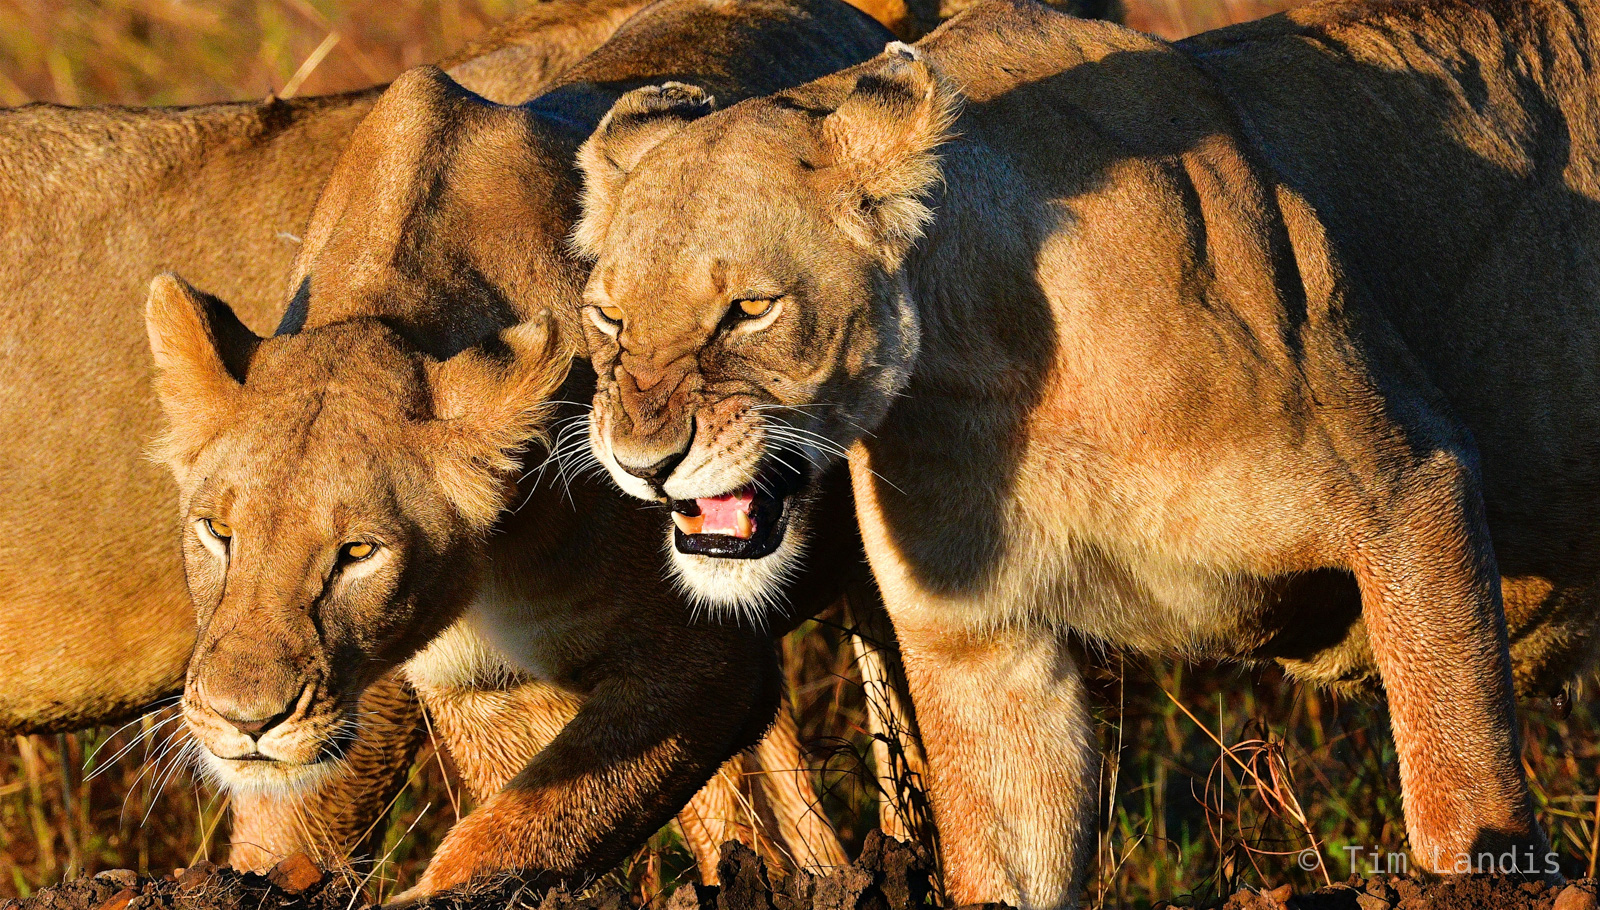 Anger, aggrevation, irritation, lions snarling, photo